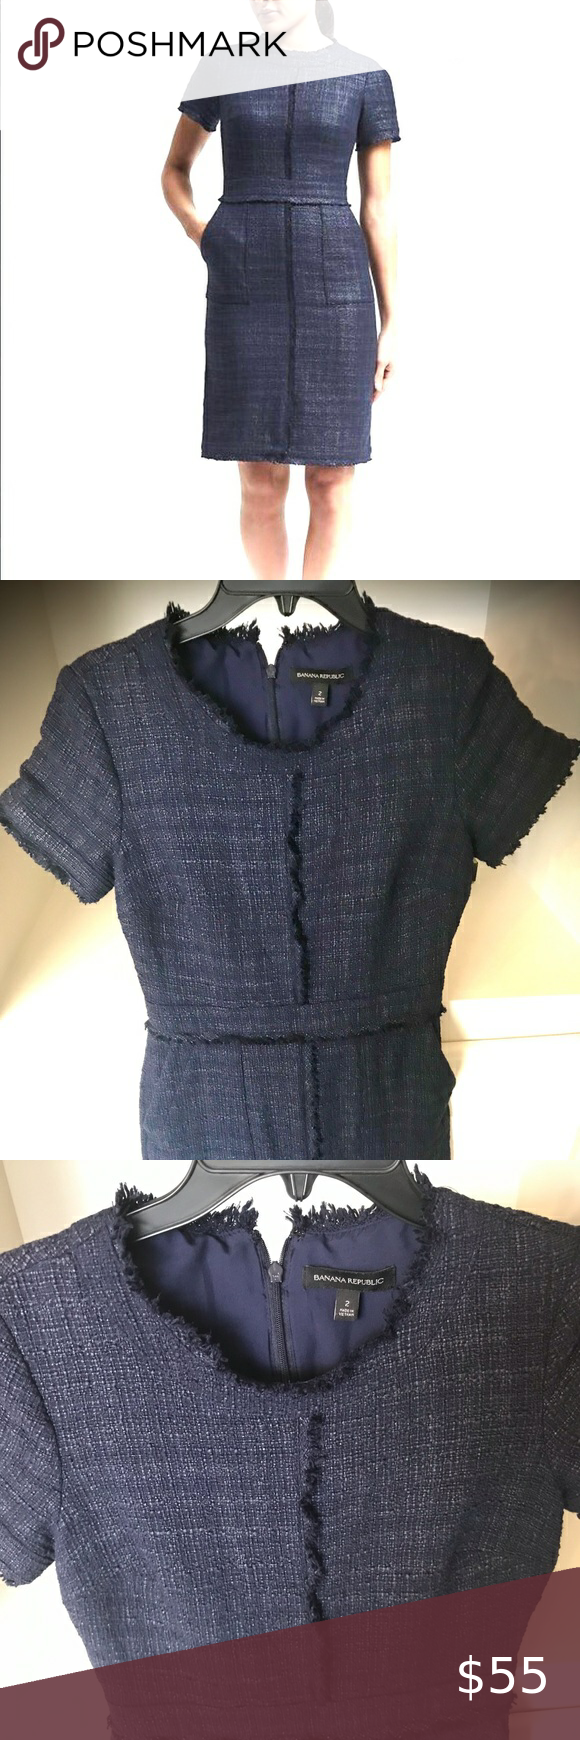 Photo of Banana Republic Navy Tweed Dress EUC I absolutely love this dress and wouldn't…